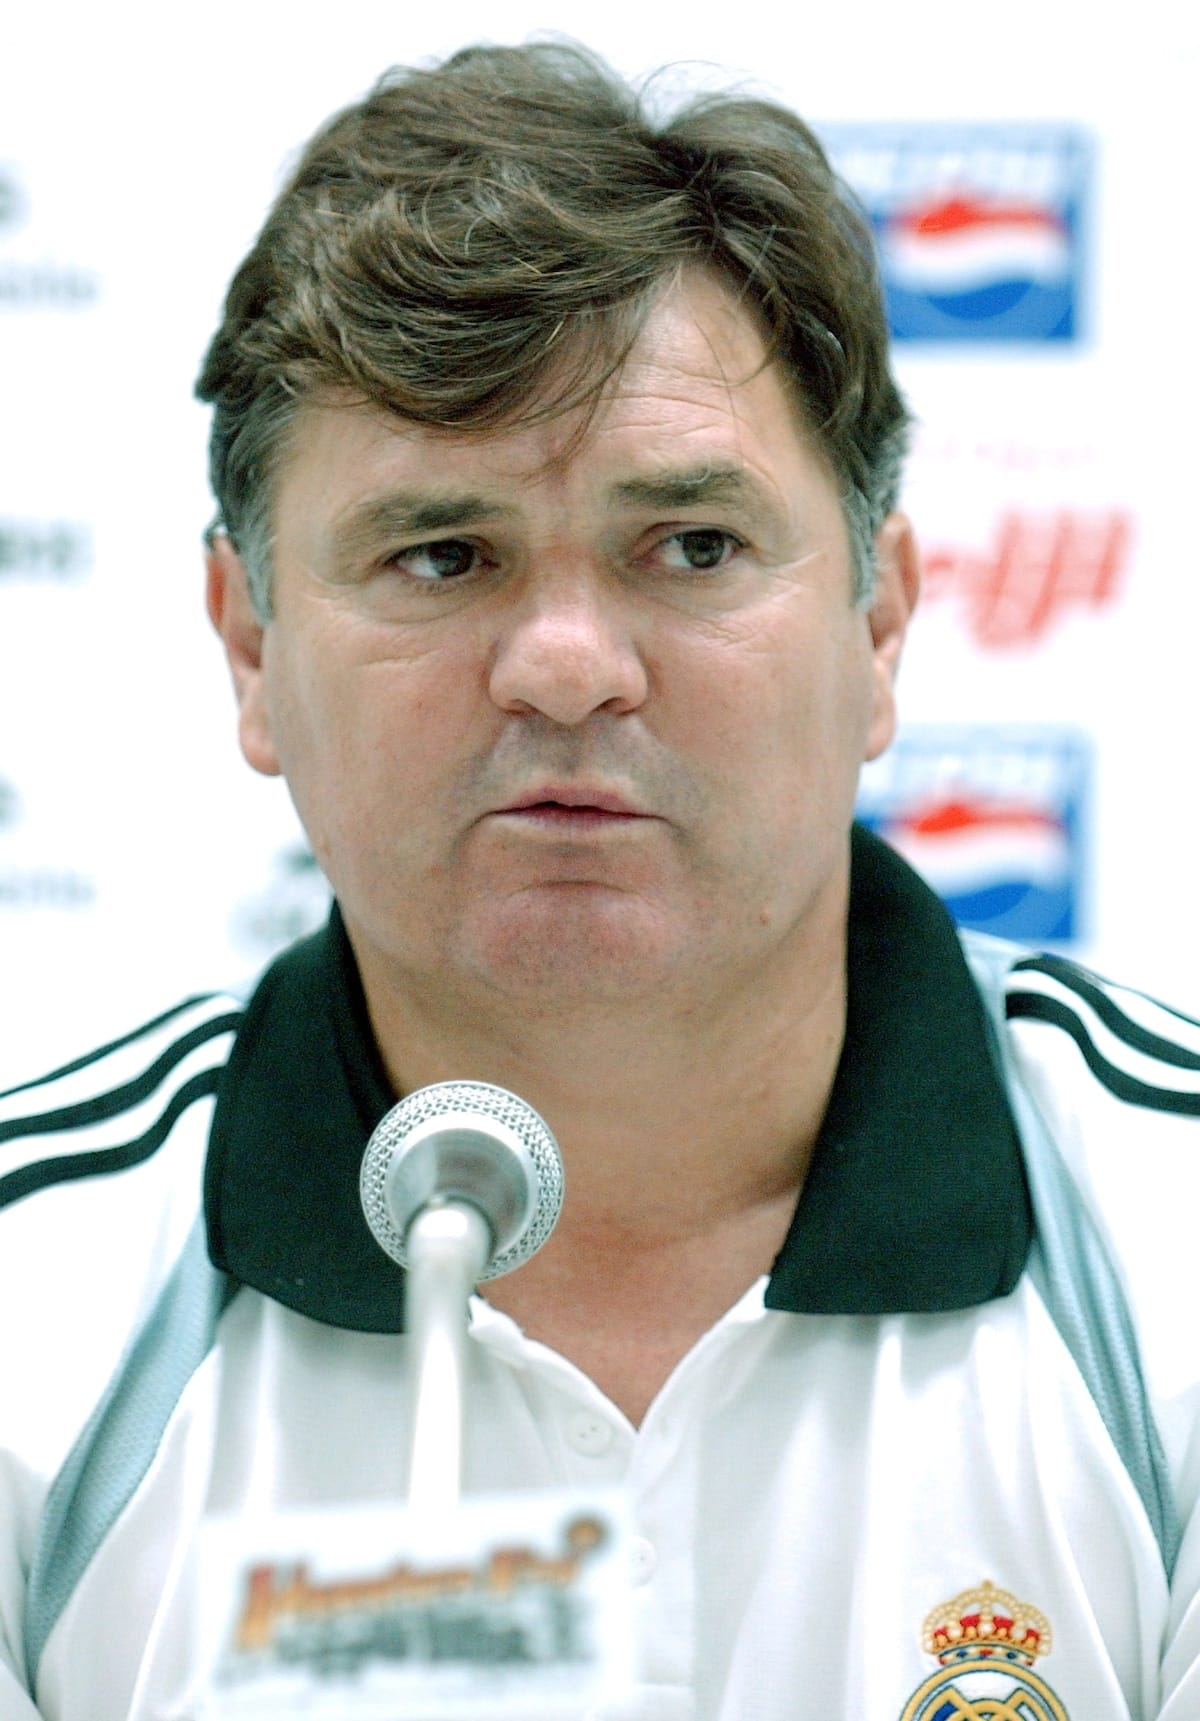 Real Madrid's top five worst managers